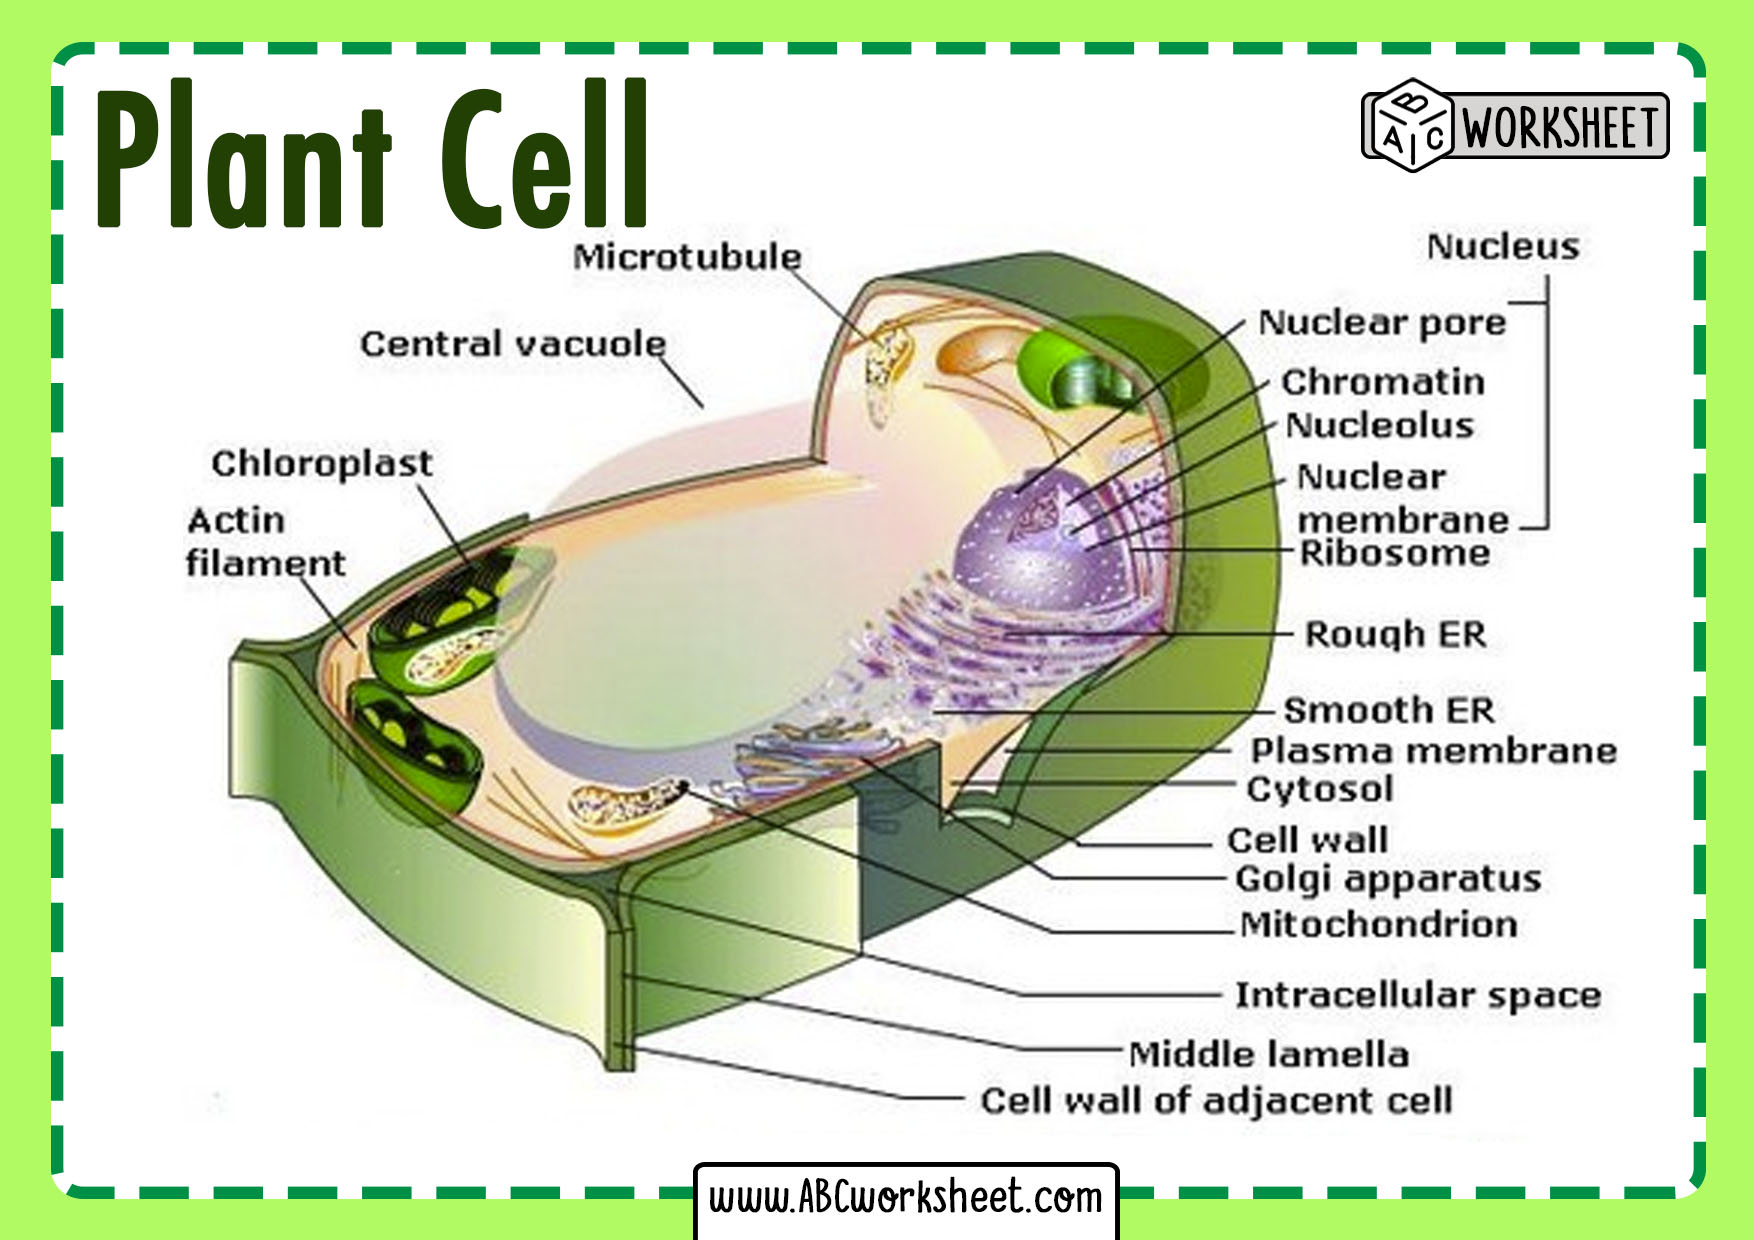 Plant Cell Parts And Structure